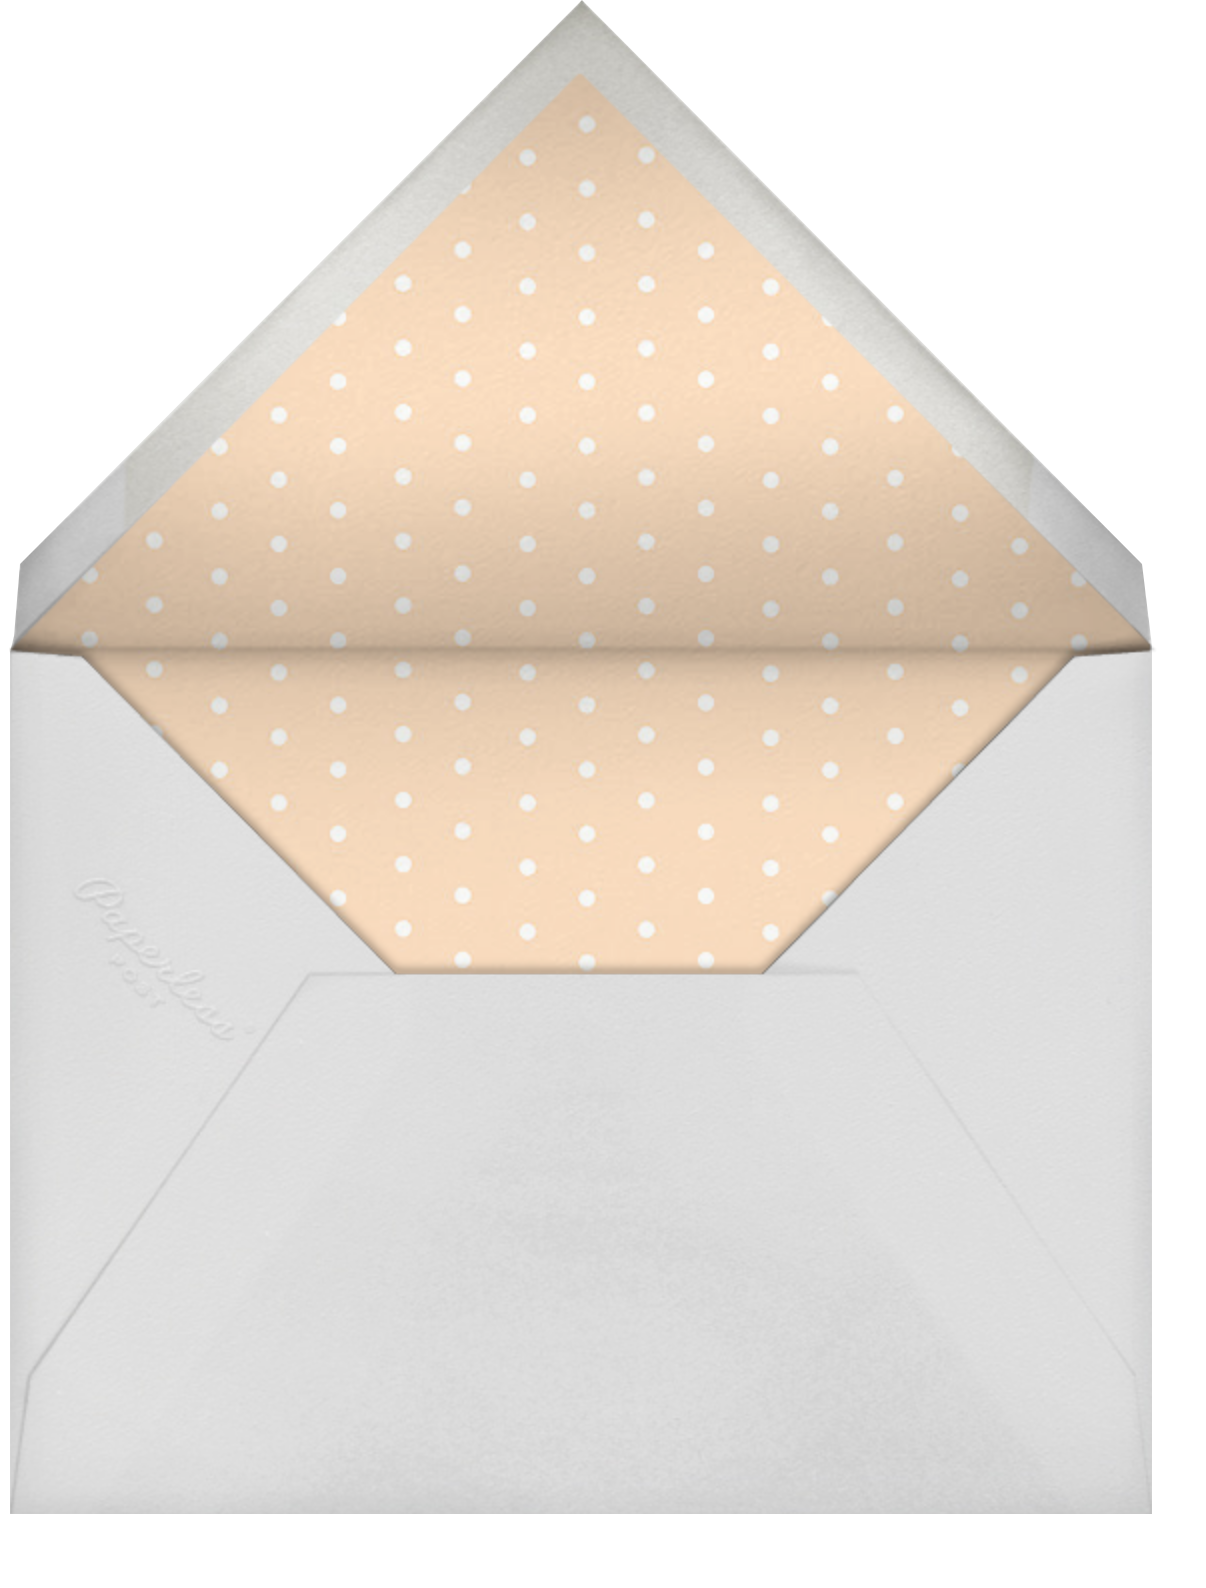 Bunny, Bear, and Baby (Photo) - Peach - Rifle Paper Co. - Woodland baby shower - envelope back